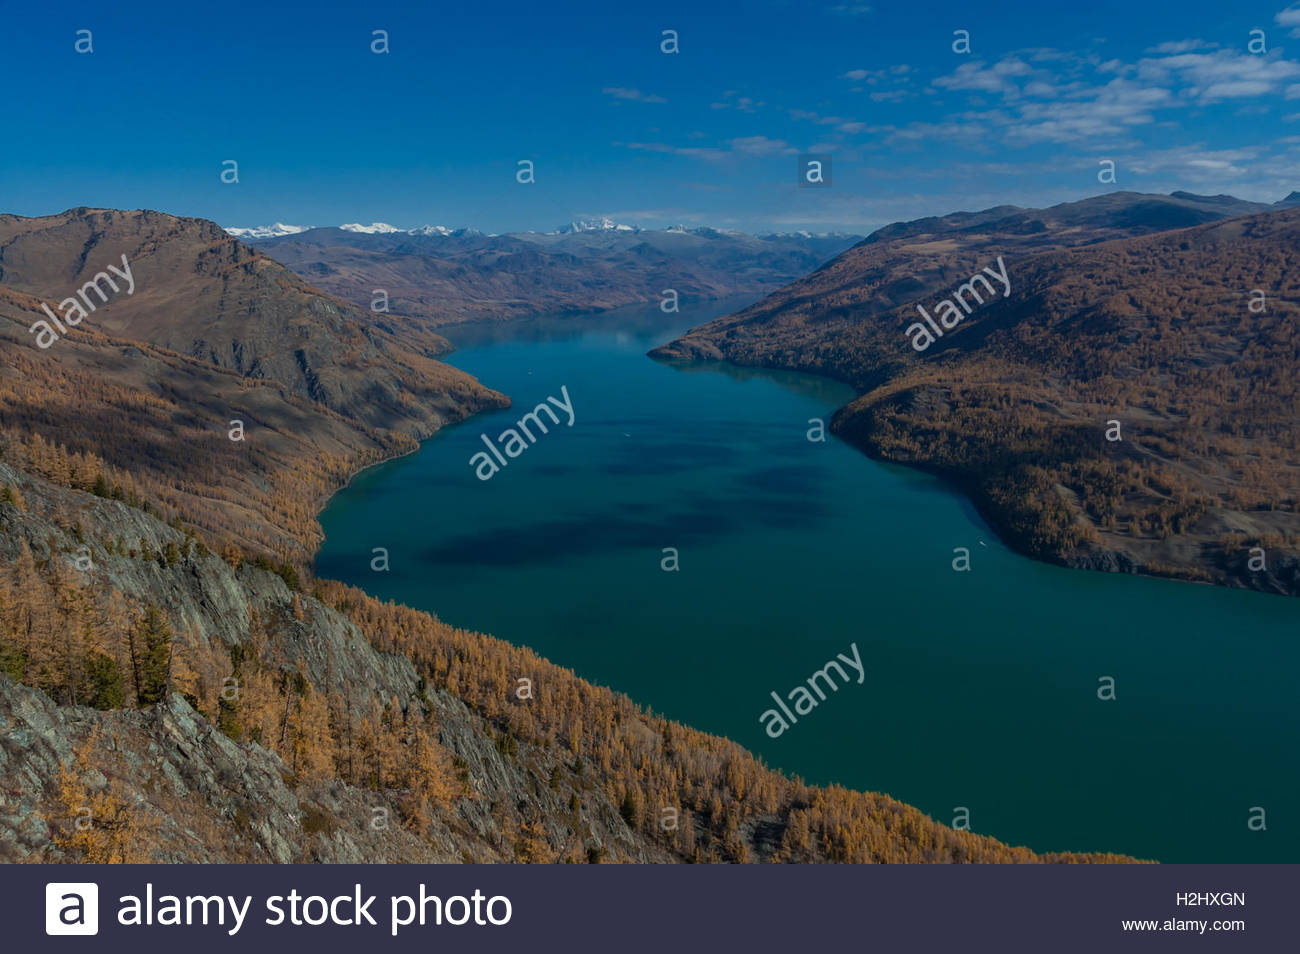 Kanas Lake Nature Reserve taken from a hillside in the park. Xinjiang Province China near the borders with Russia - Stock Image